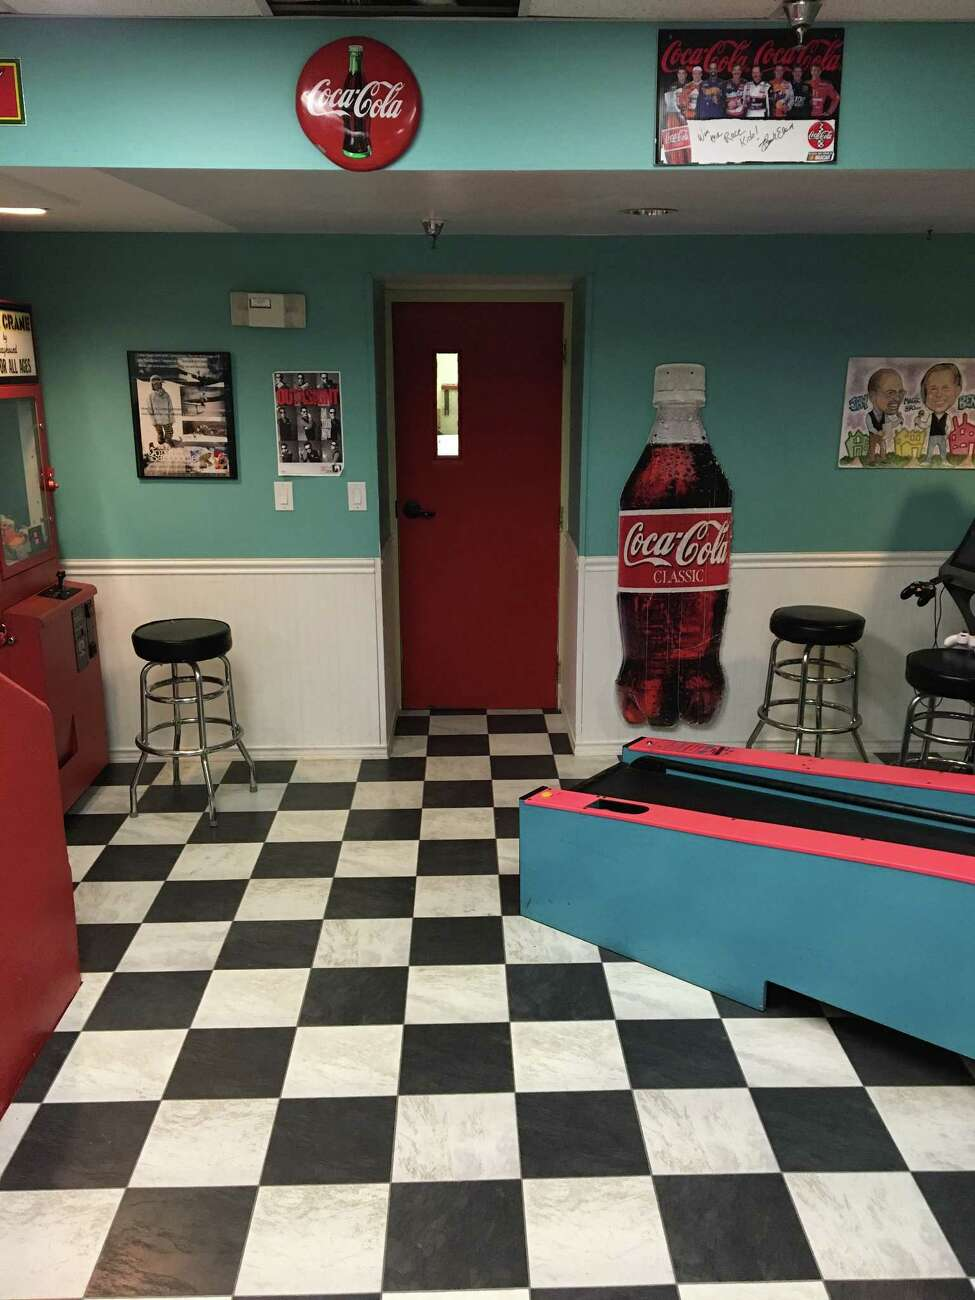 The 1950s diner portion of the basement space was made over into an 1980s style arcade by the 2017 class of Leadership Tech Valley. (Photo: Lee Owens)